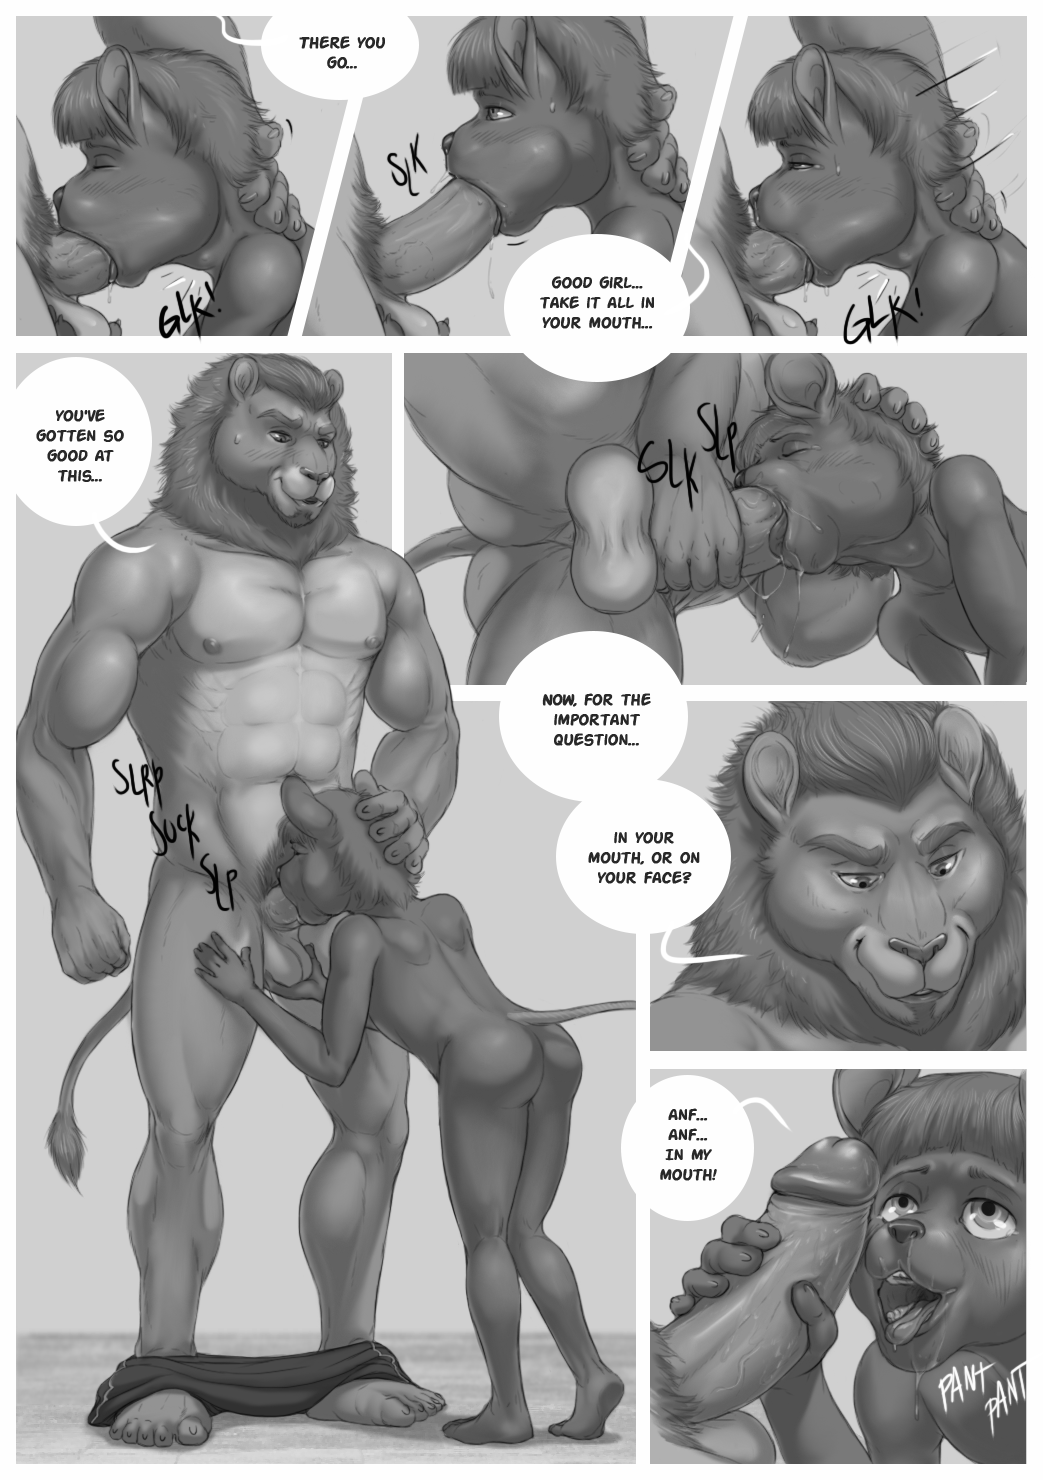 abs age_difference athletic balls bent_over breath butt comic cub deep_throat duo erect feline female gagging greyscale humanoid_penis lion looking_up low-angle_view male male/female mammal mane monochrome mouse muscular naughty_face neck_bulge nipples nude oral panting pants_around_feet pecs penis penis_grab perineum retracted_foreskin rodent rov shoving size_difference smile smirk sound_effects standing sweat sweatdrop uncut worm's-eye_view young